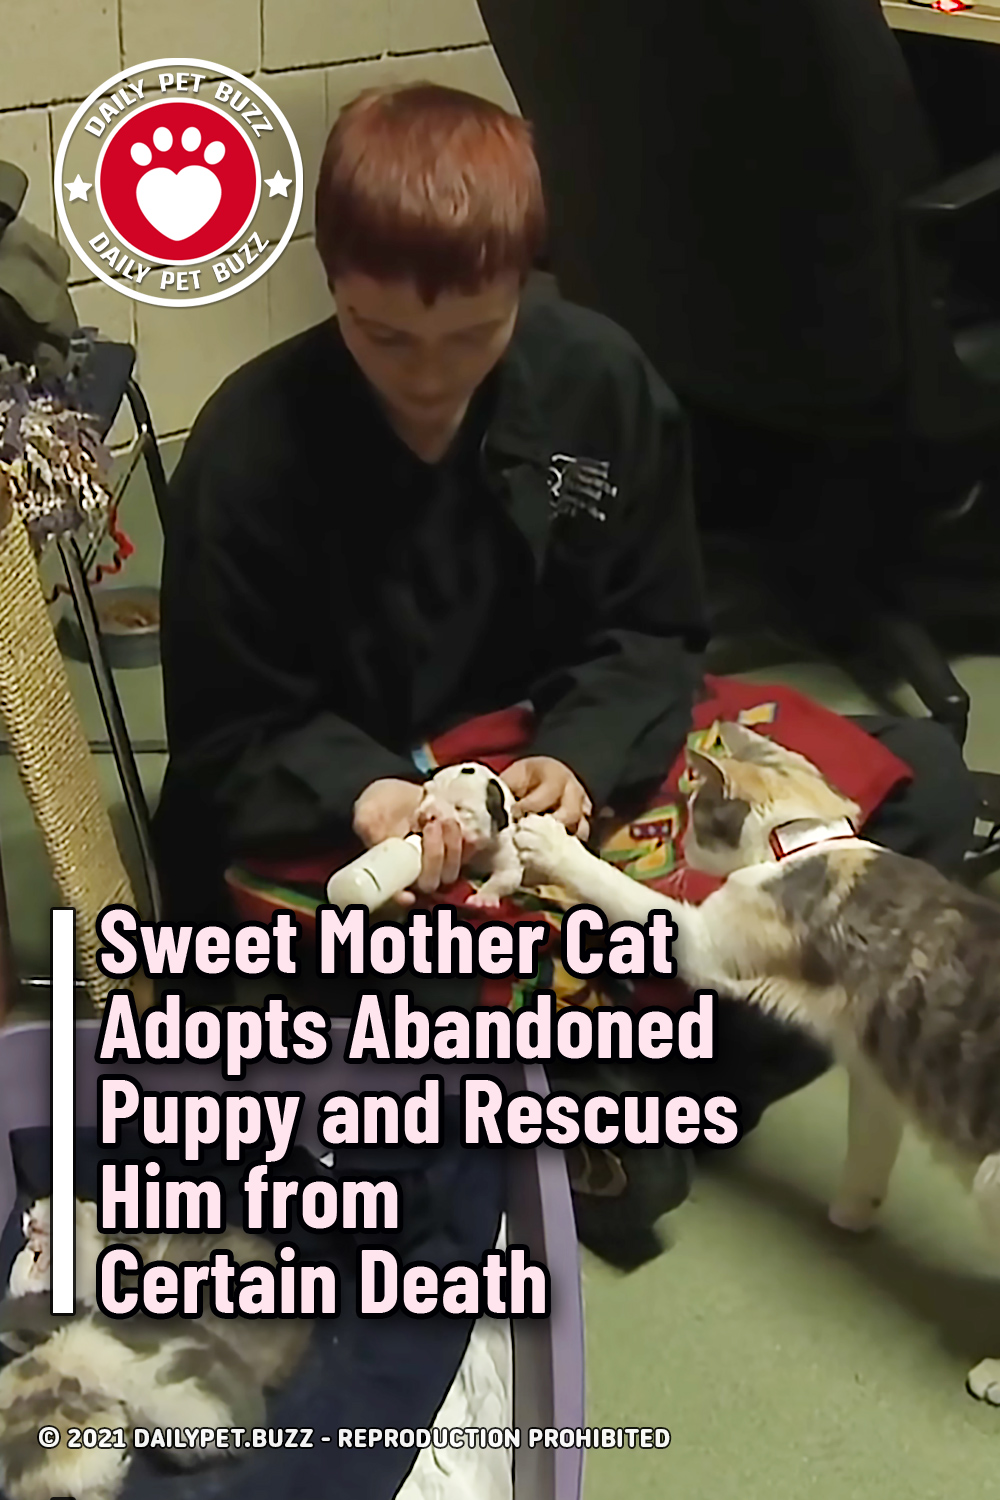 Sweet Mother Cat Adopts Abandoned Puppy and Rescues Him from Certain Death